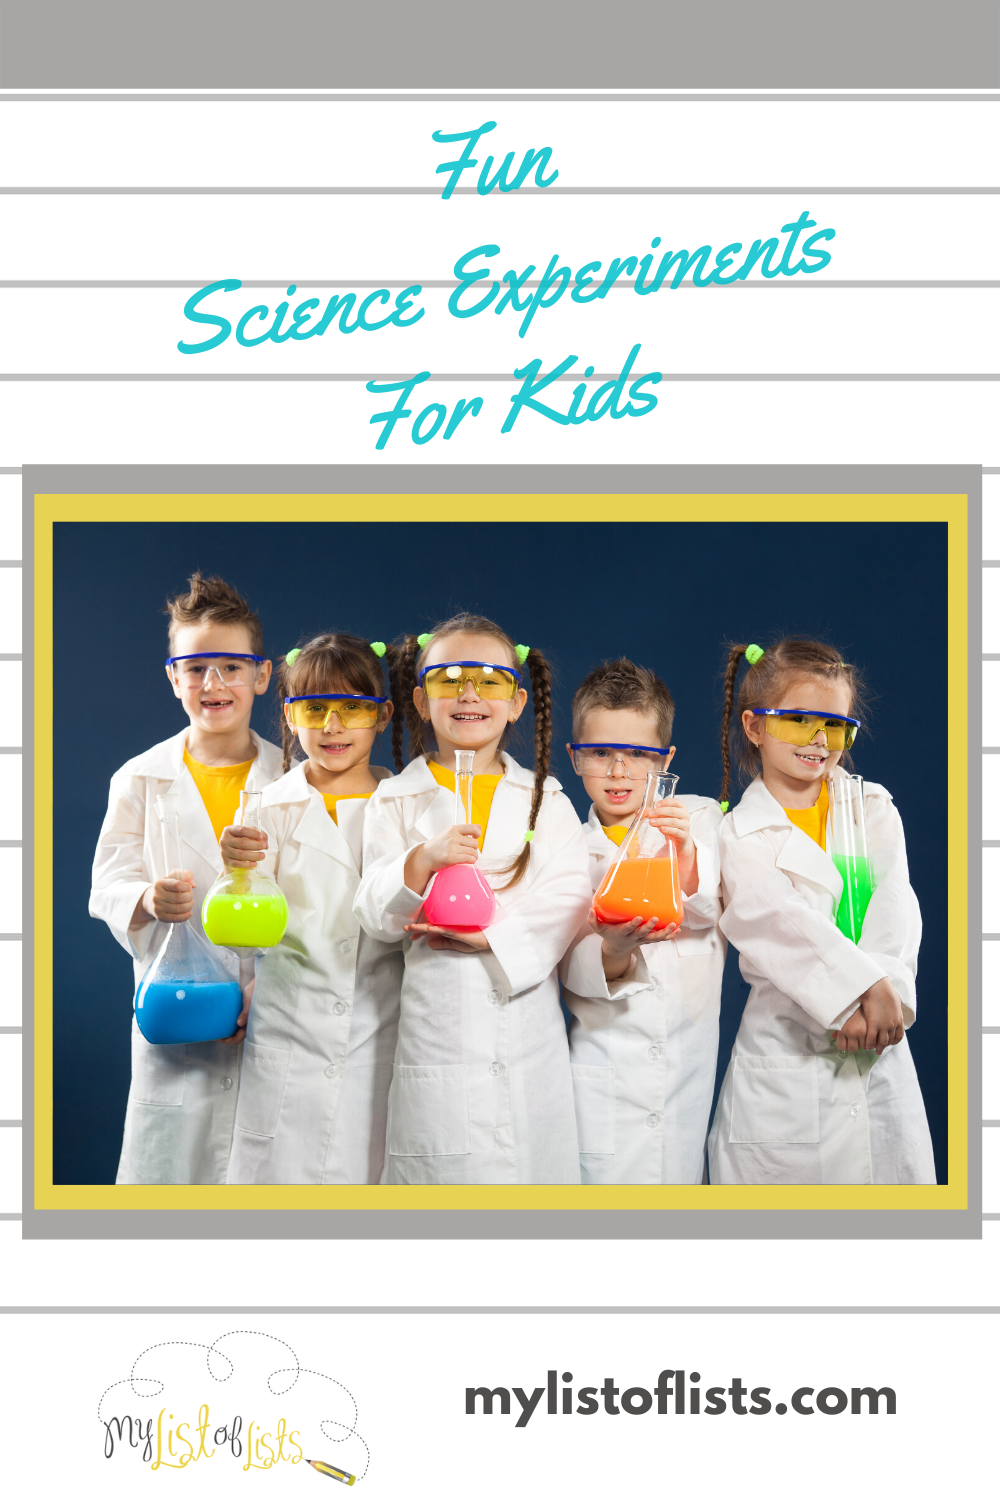 Imagine turning your kitchen into a science lab. White coats and all. The kids will go nuts about this idea. Let them play and learn at the same time with any one of these 10 easy science experiments for kids. Keep reading and get ready for some fun. #kidsscienceideas #scienceforkids #kidseducationideas